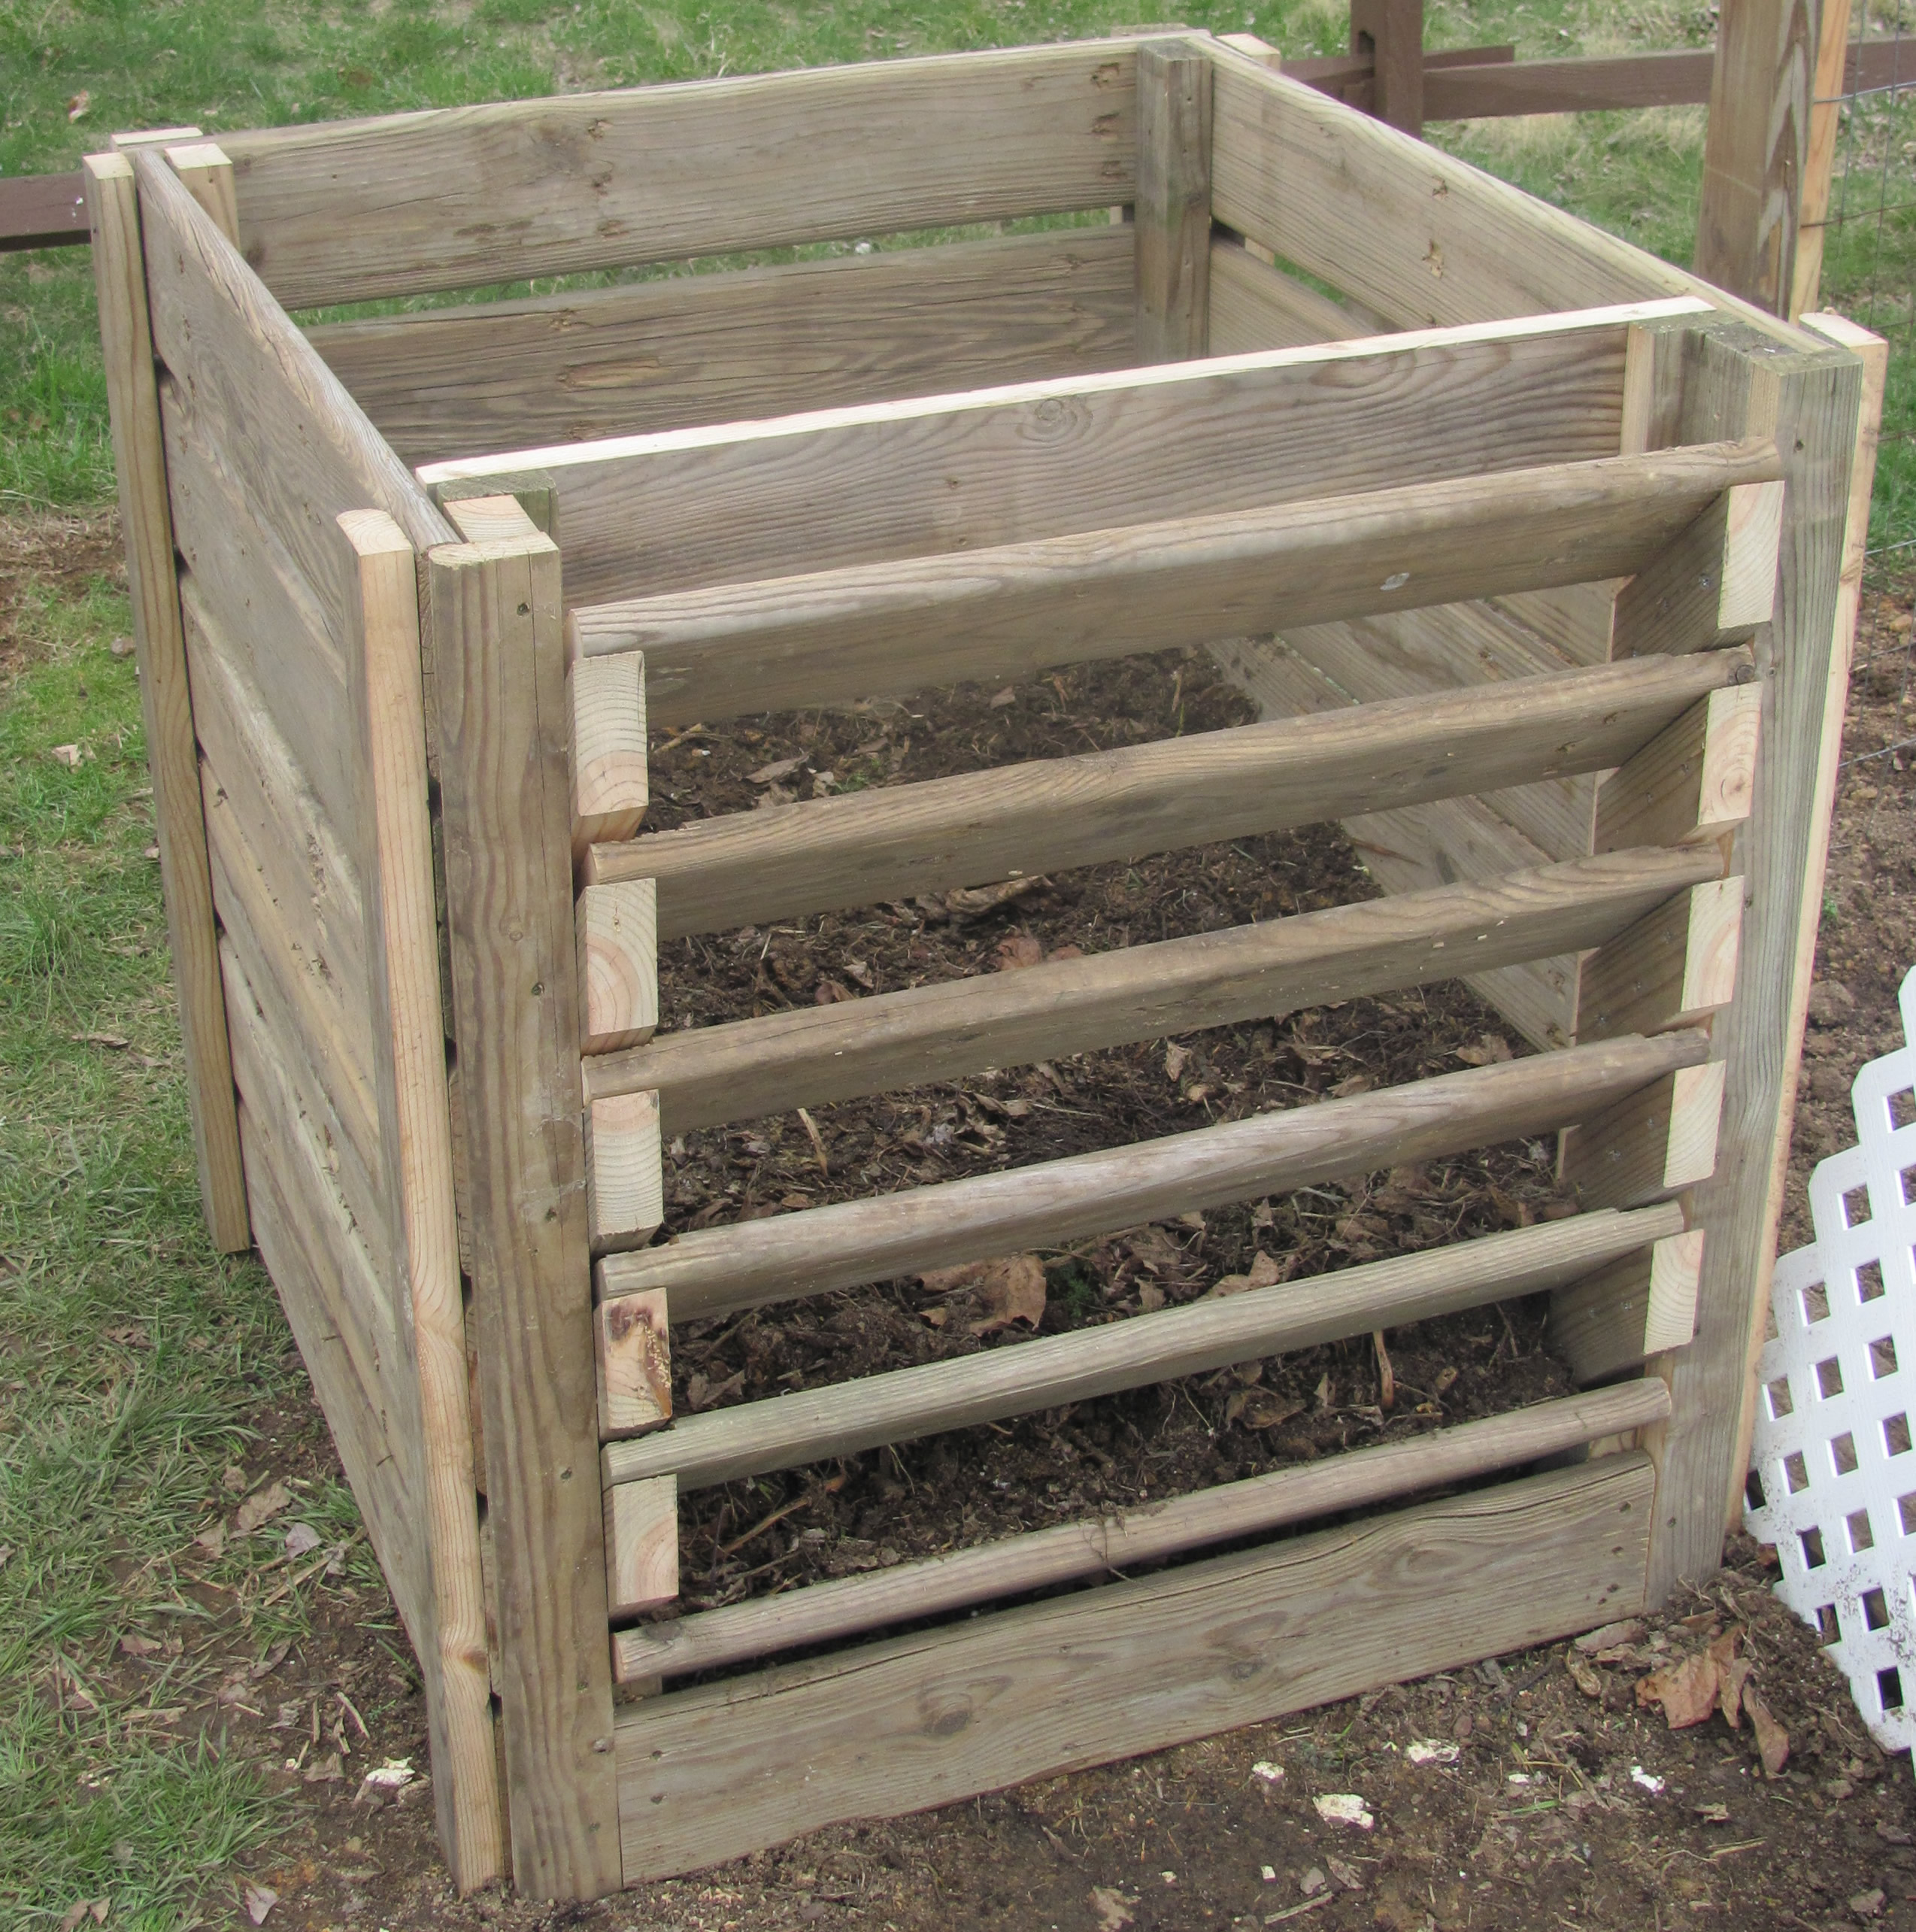 Diy Compost Bin Plans Compost Bin Plans Pdf Pdf Woodworking